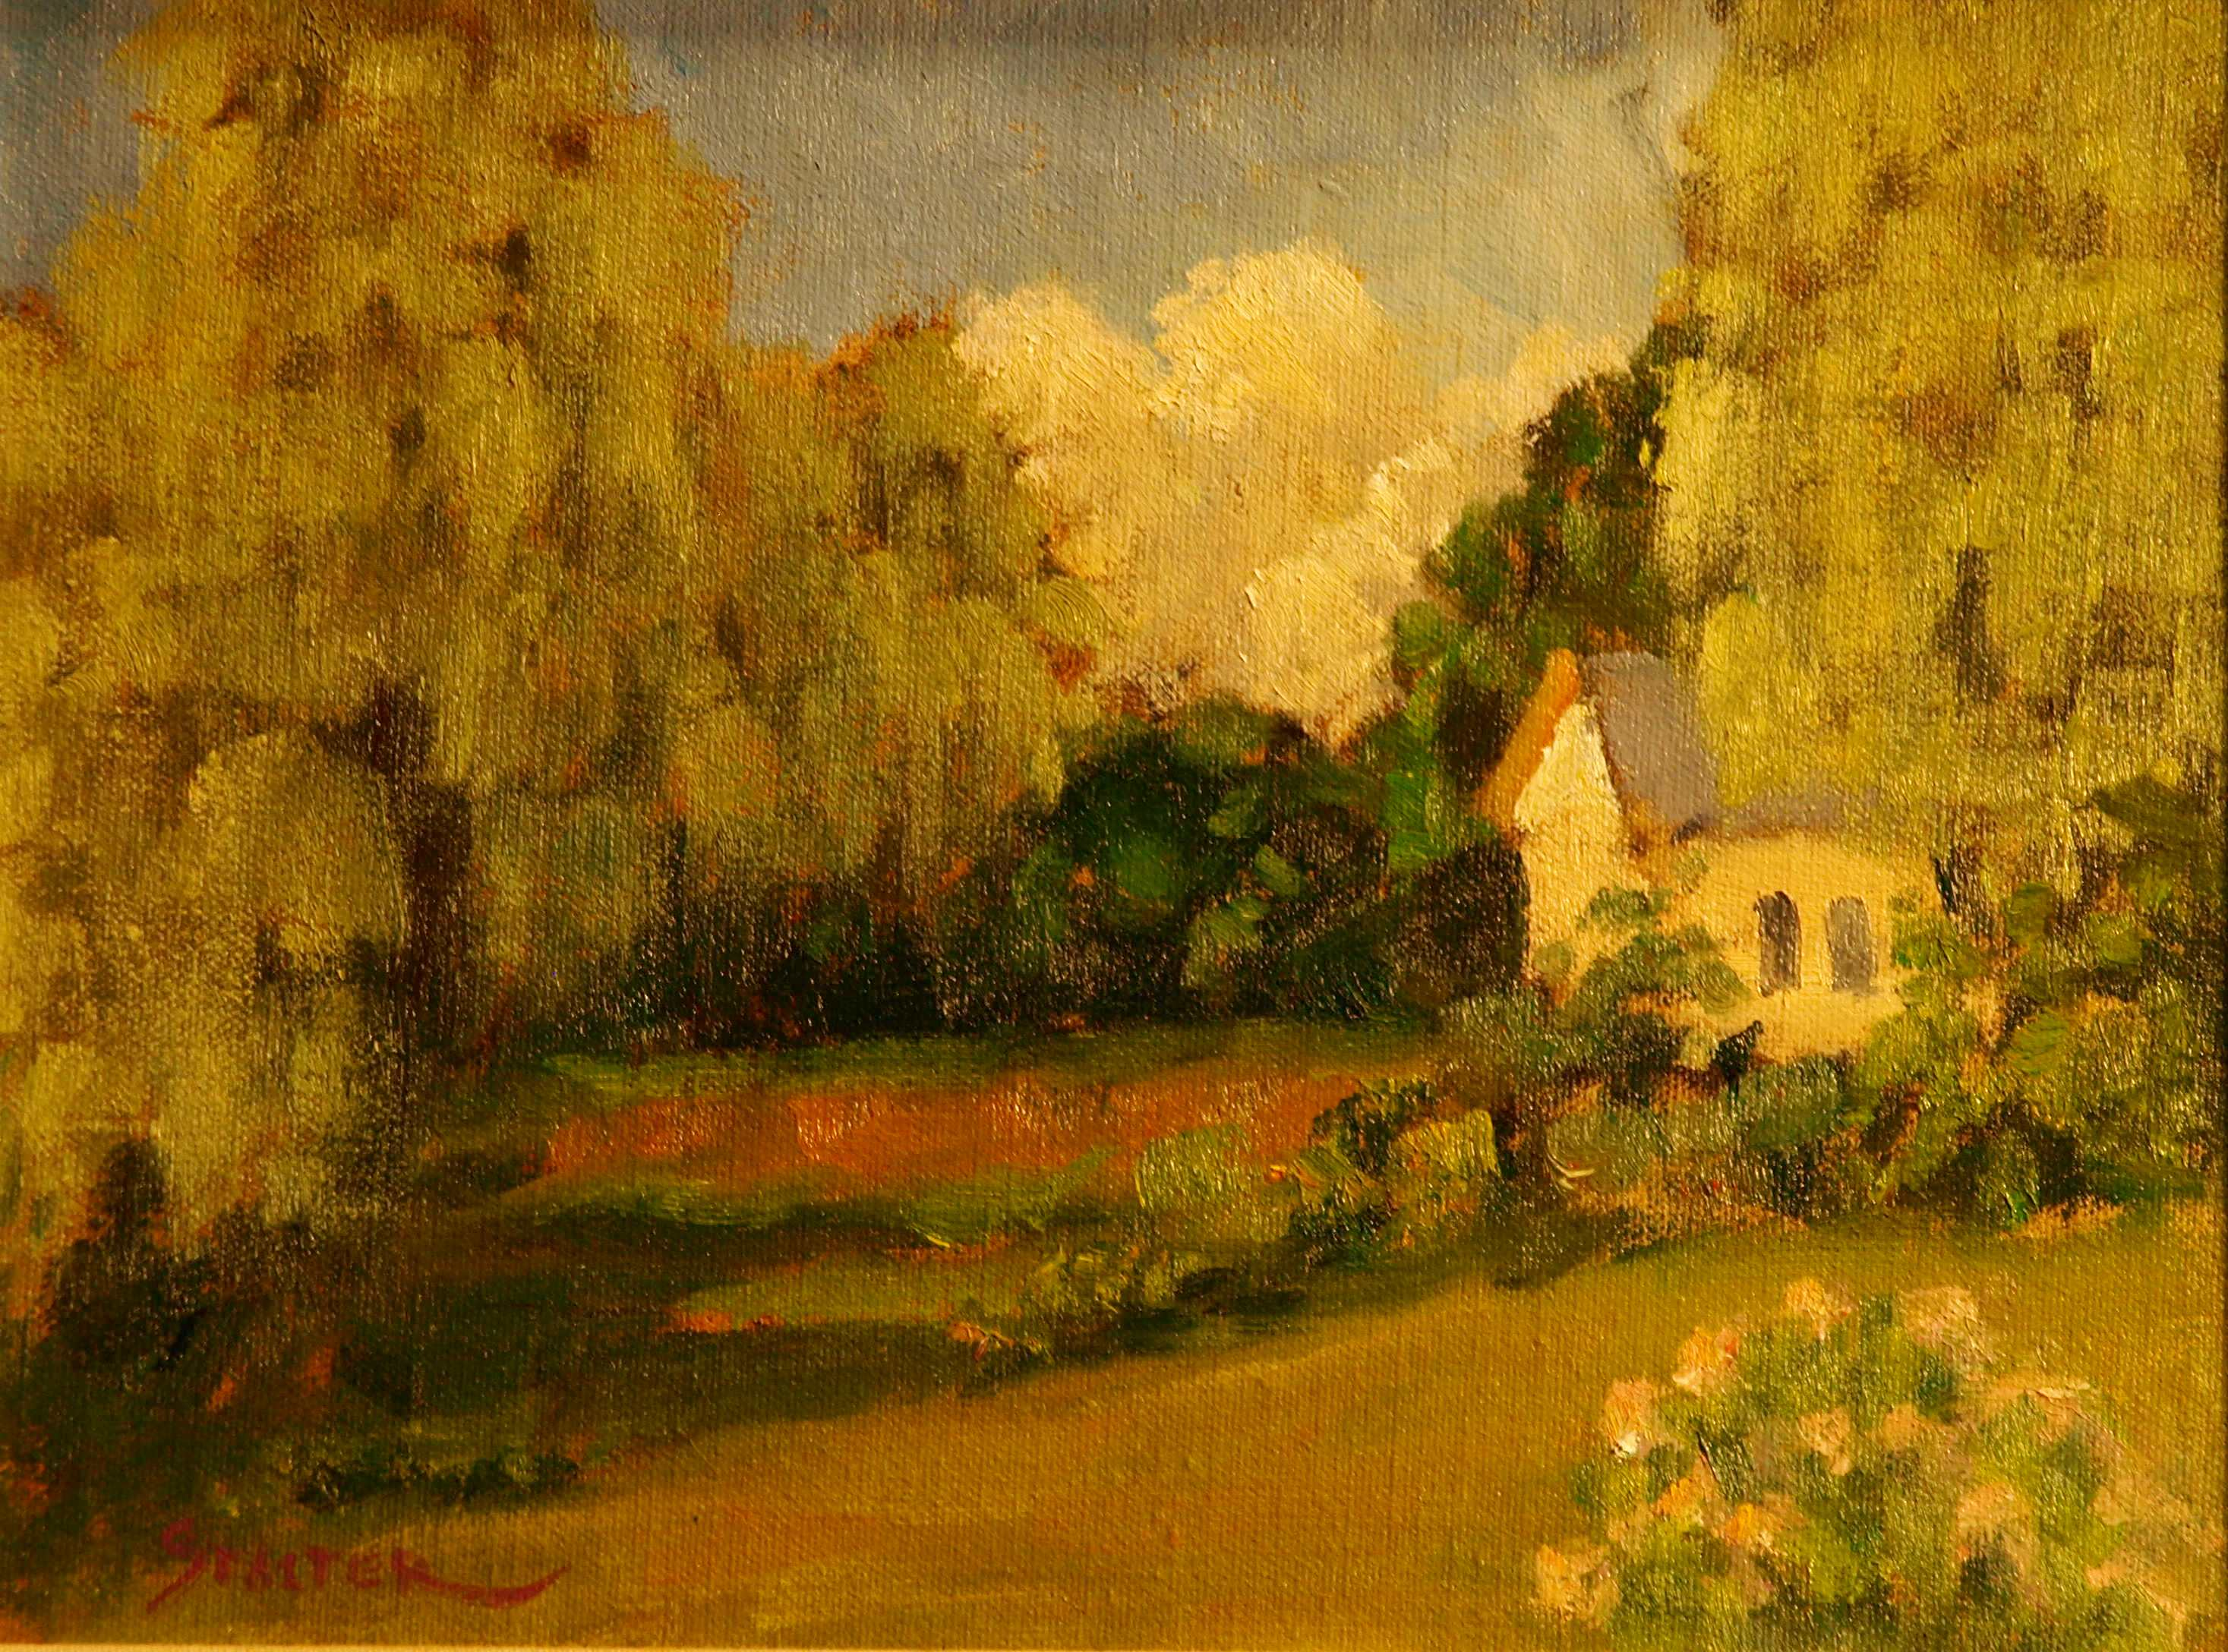 Yellow House Amid Willows, Oil on Canvas on Panel, 9 x 12 Inches, by Richard Stalter, $225